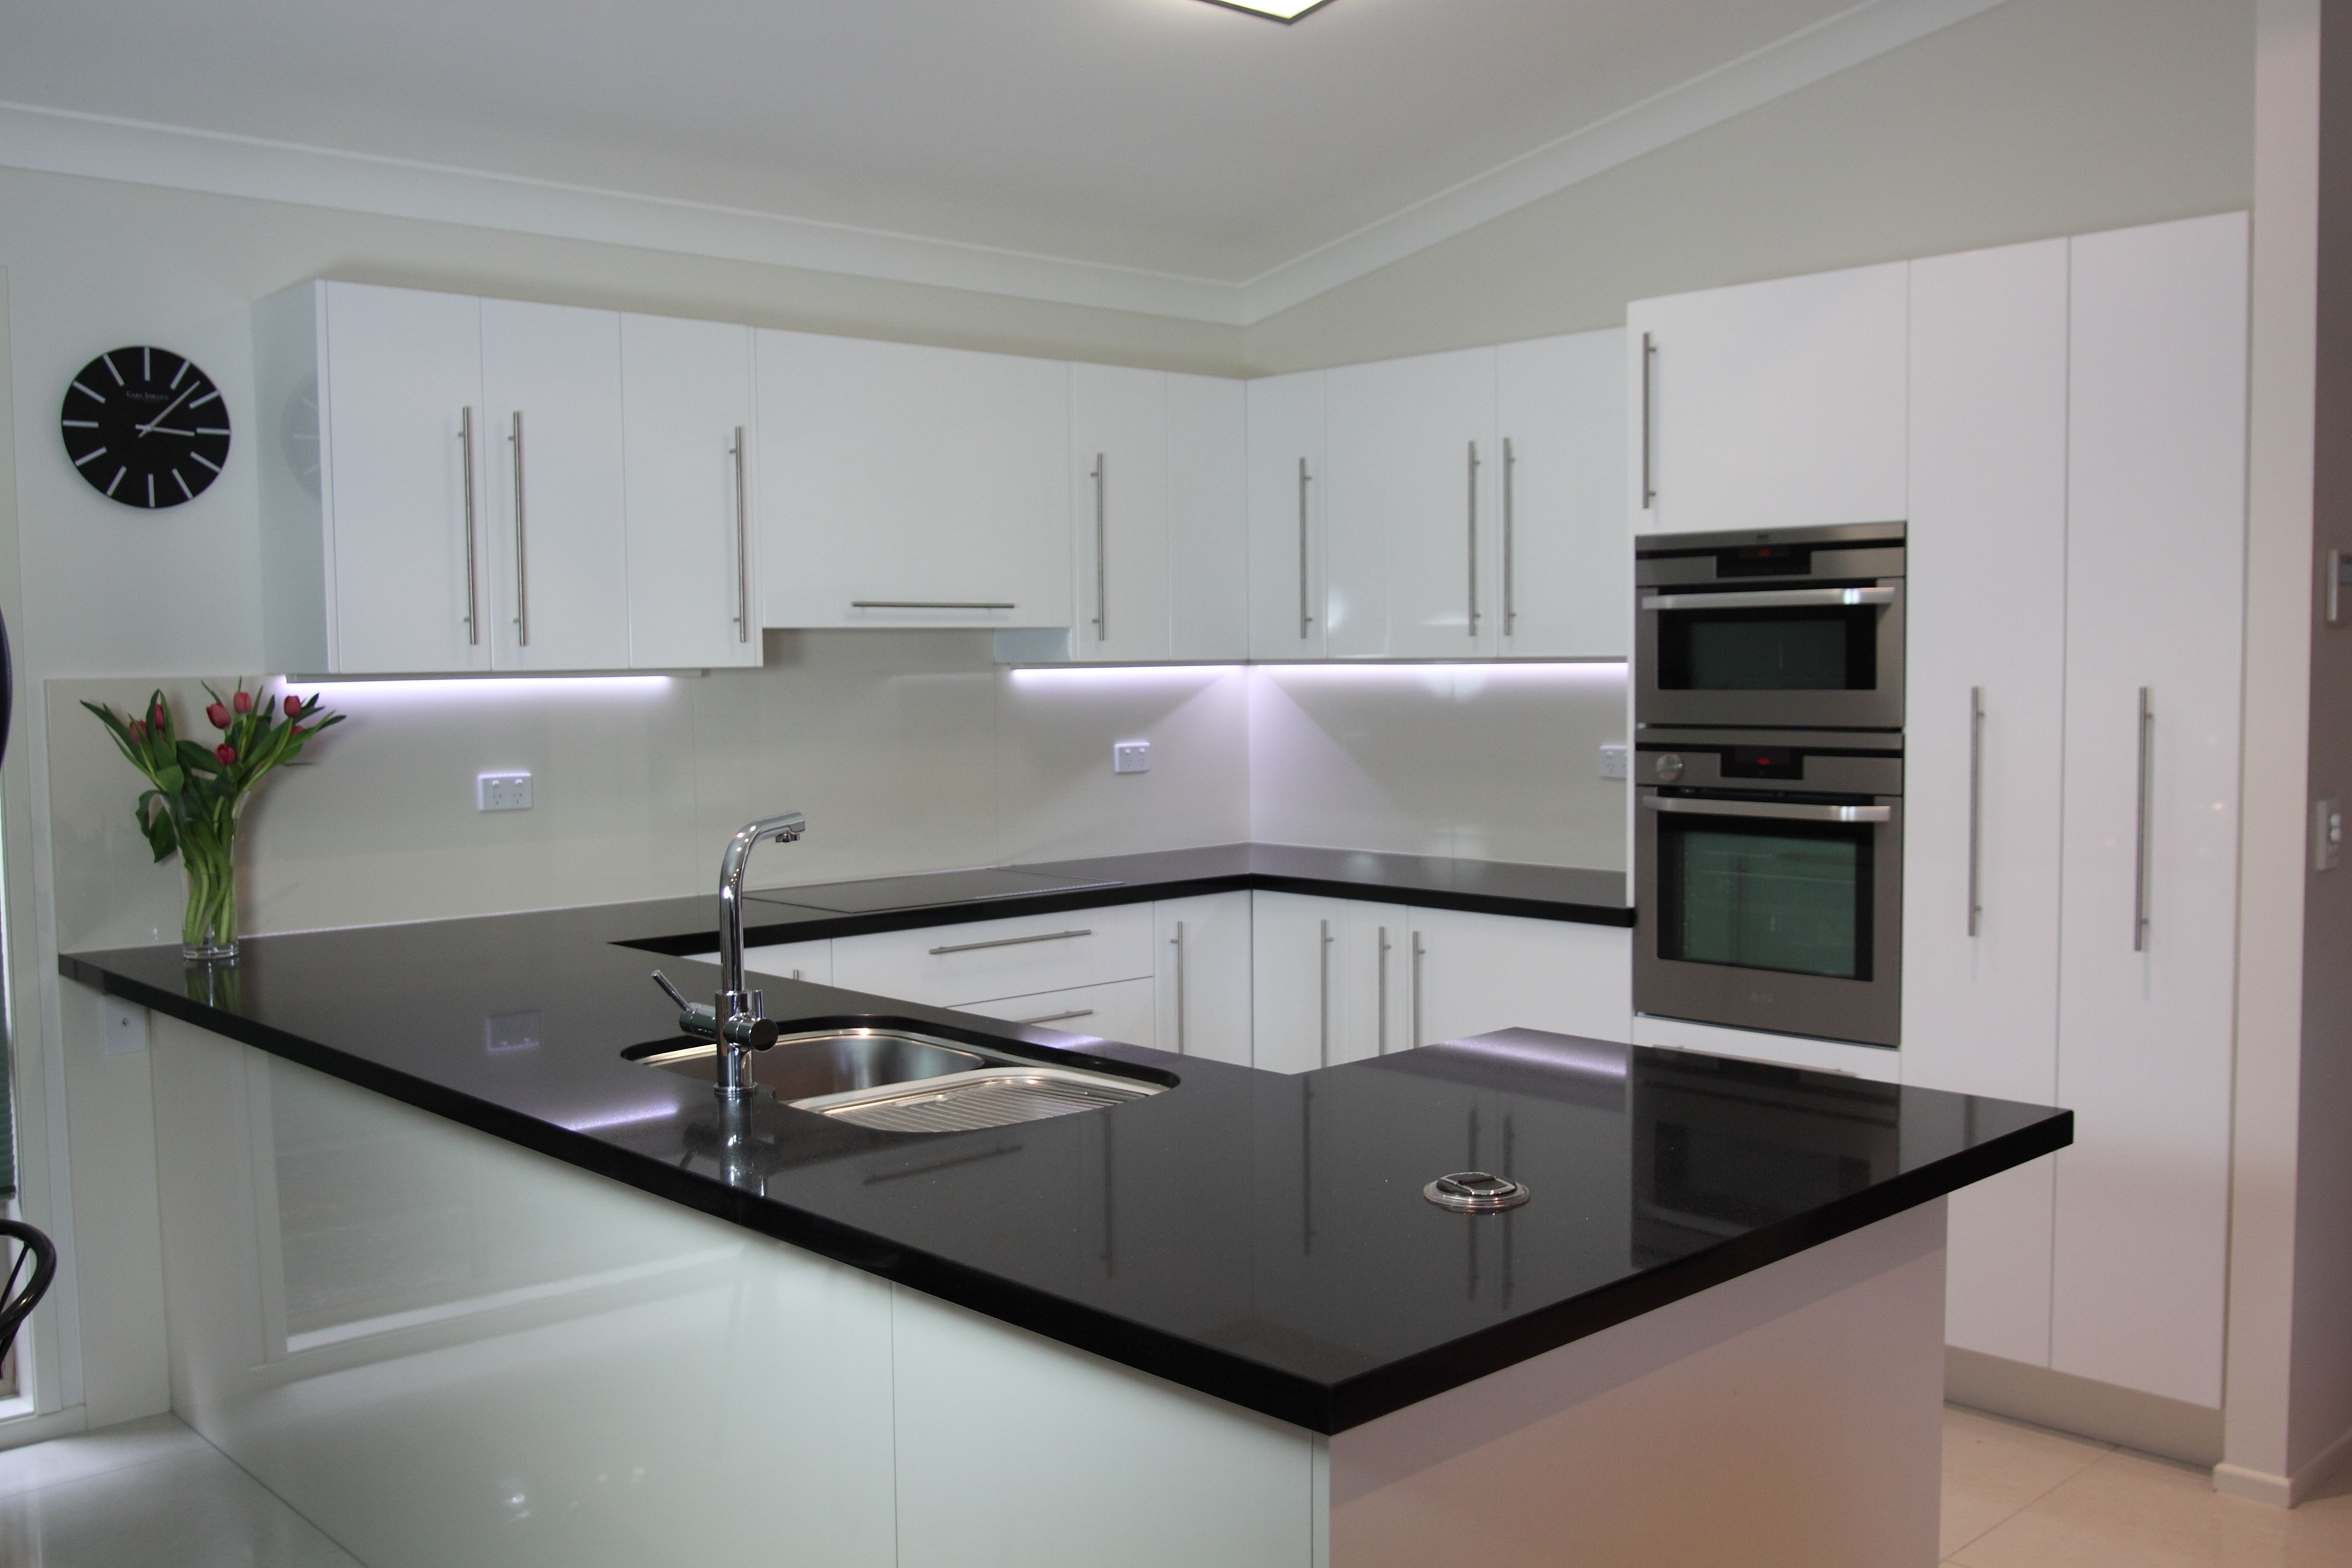 Black benchtop white cupboards Classic style that never dates